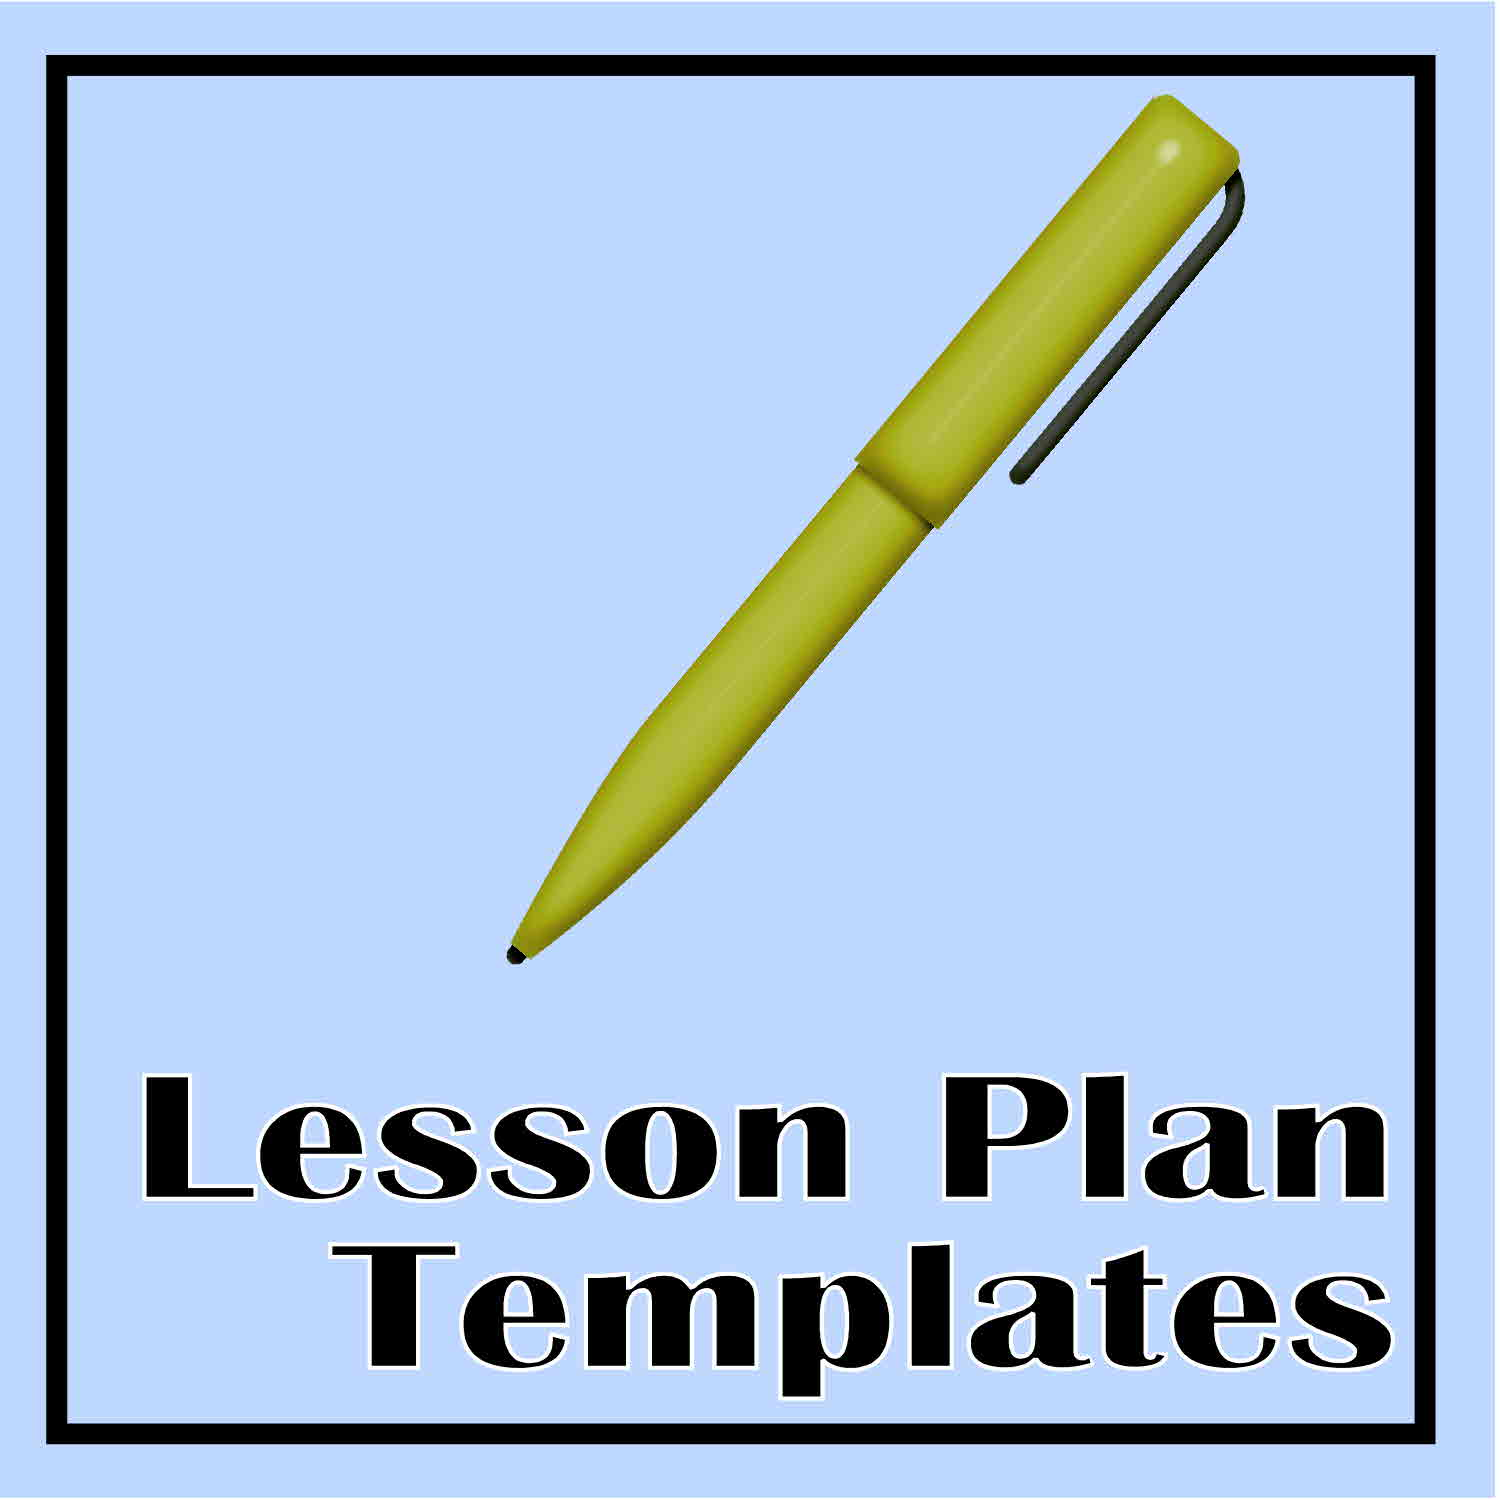 Lesson Plan Templates - The Curriculum Corner 123